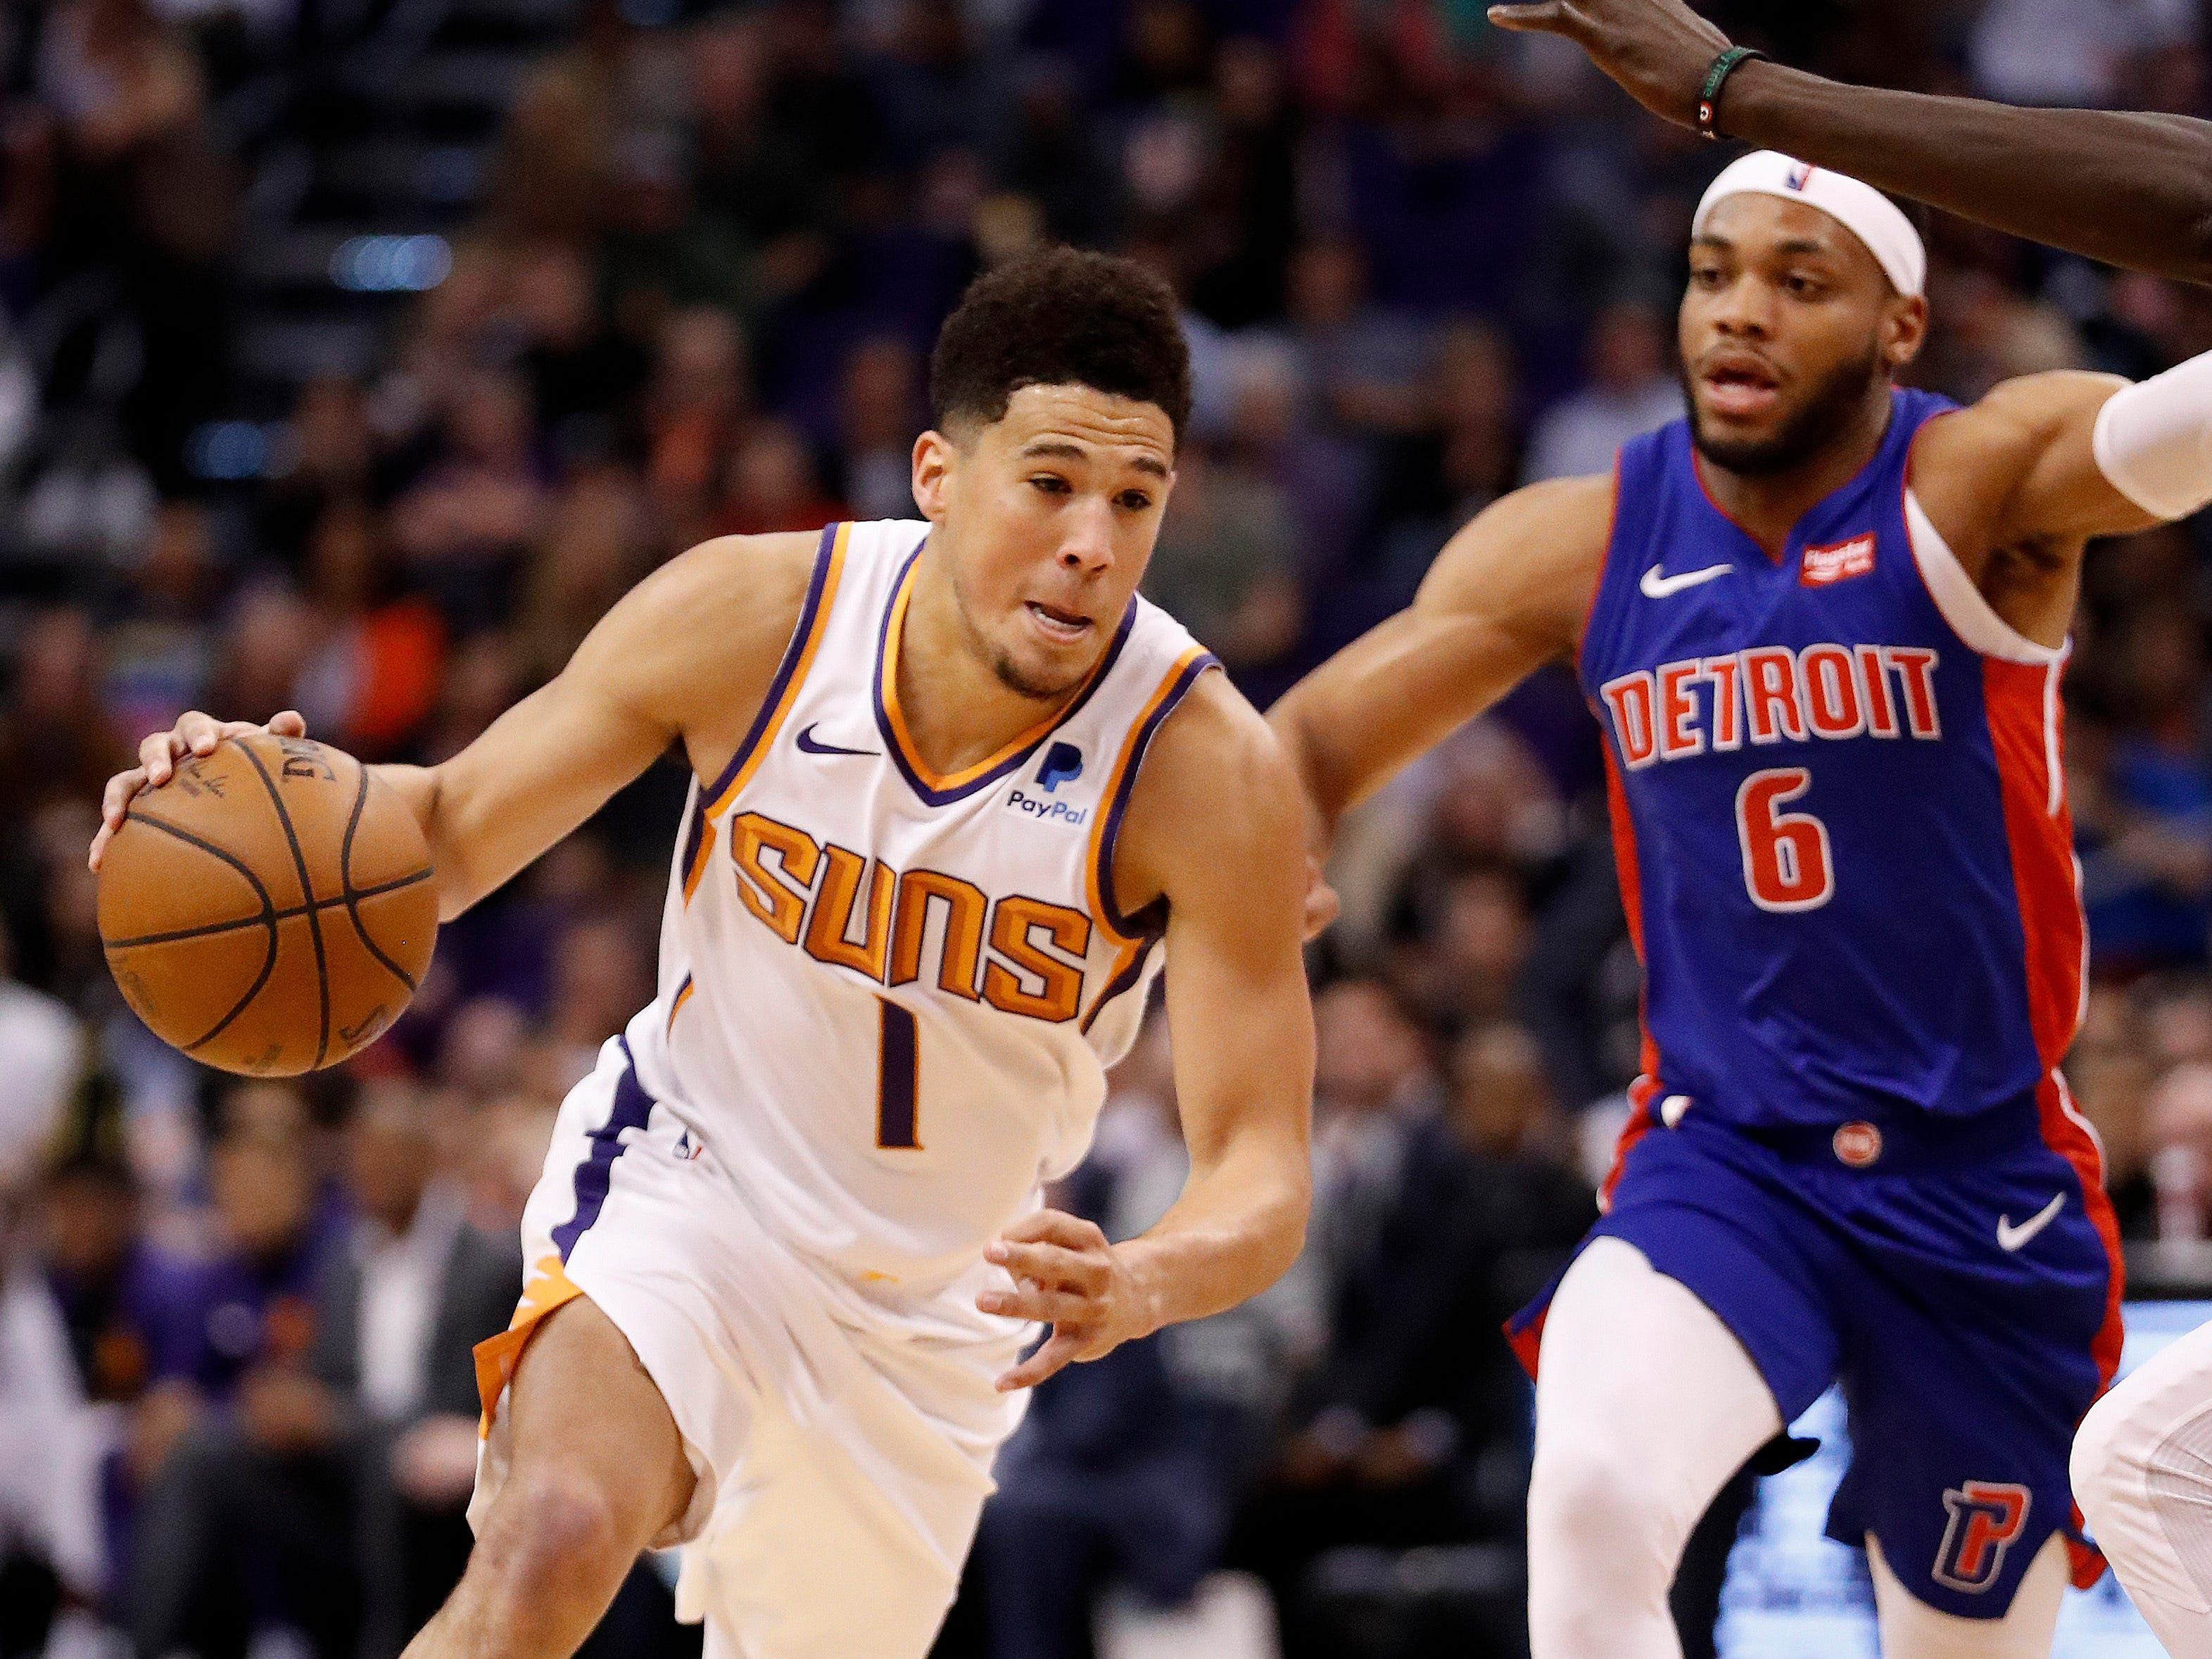 Phoenix Suns guard Devin Booker (1) drives as Detroit Pistons guard Bruce Brown (6) pursues during the second half of an NBA basketball game Thursday, March 21, 2019, in Phoenix.